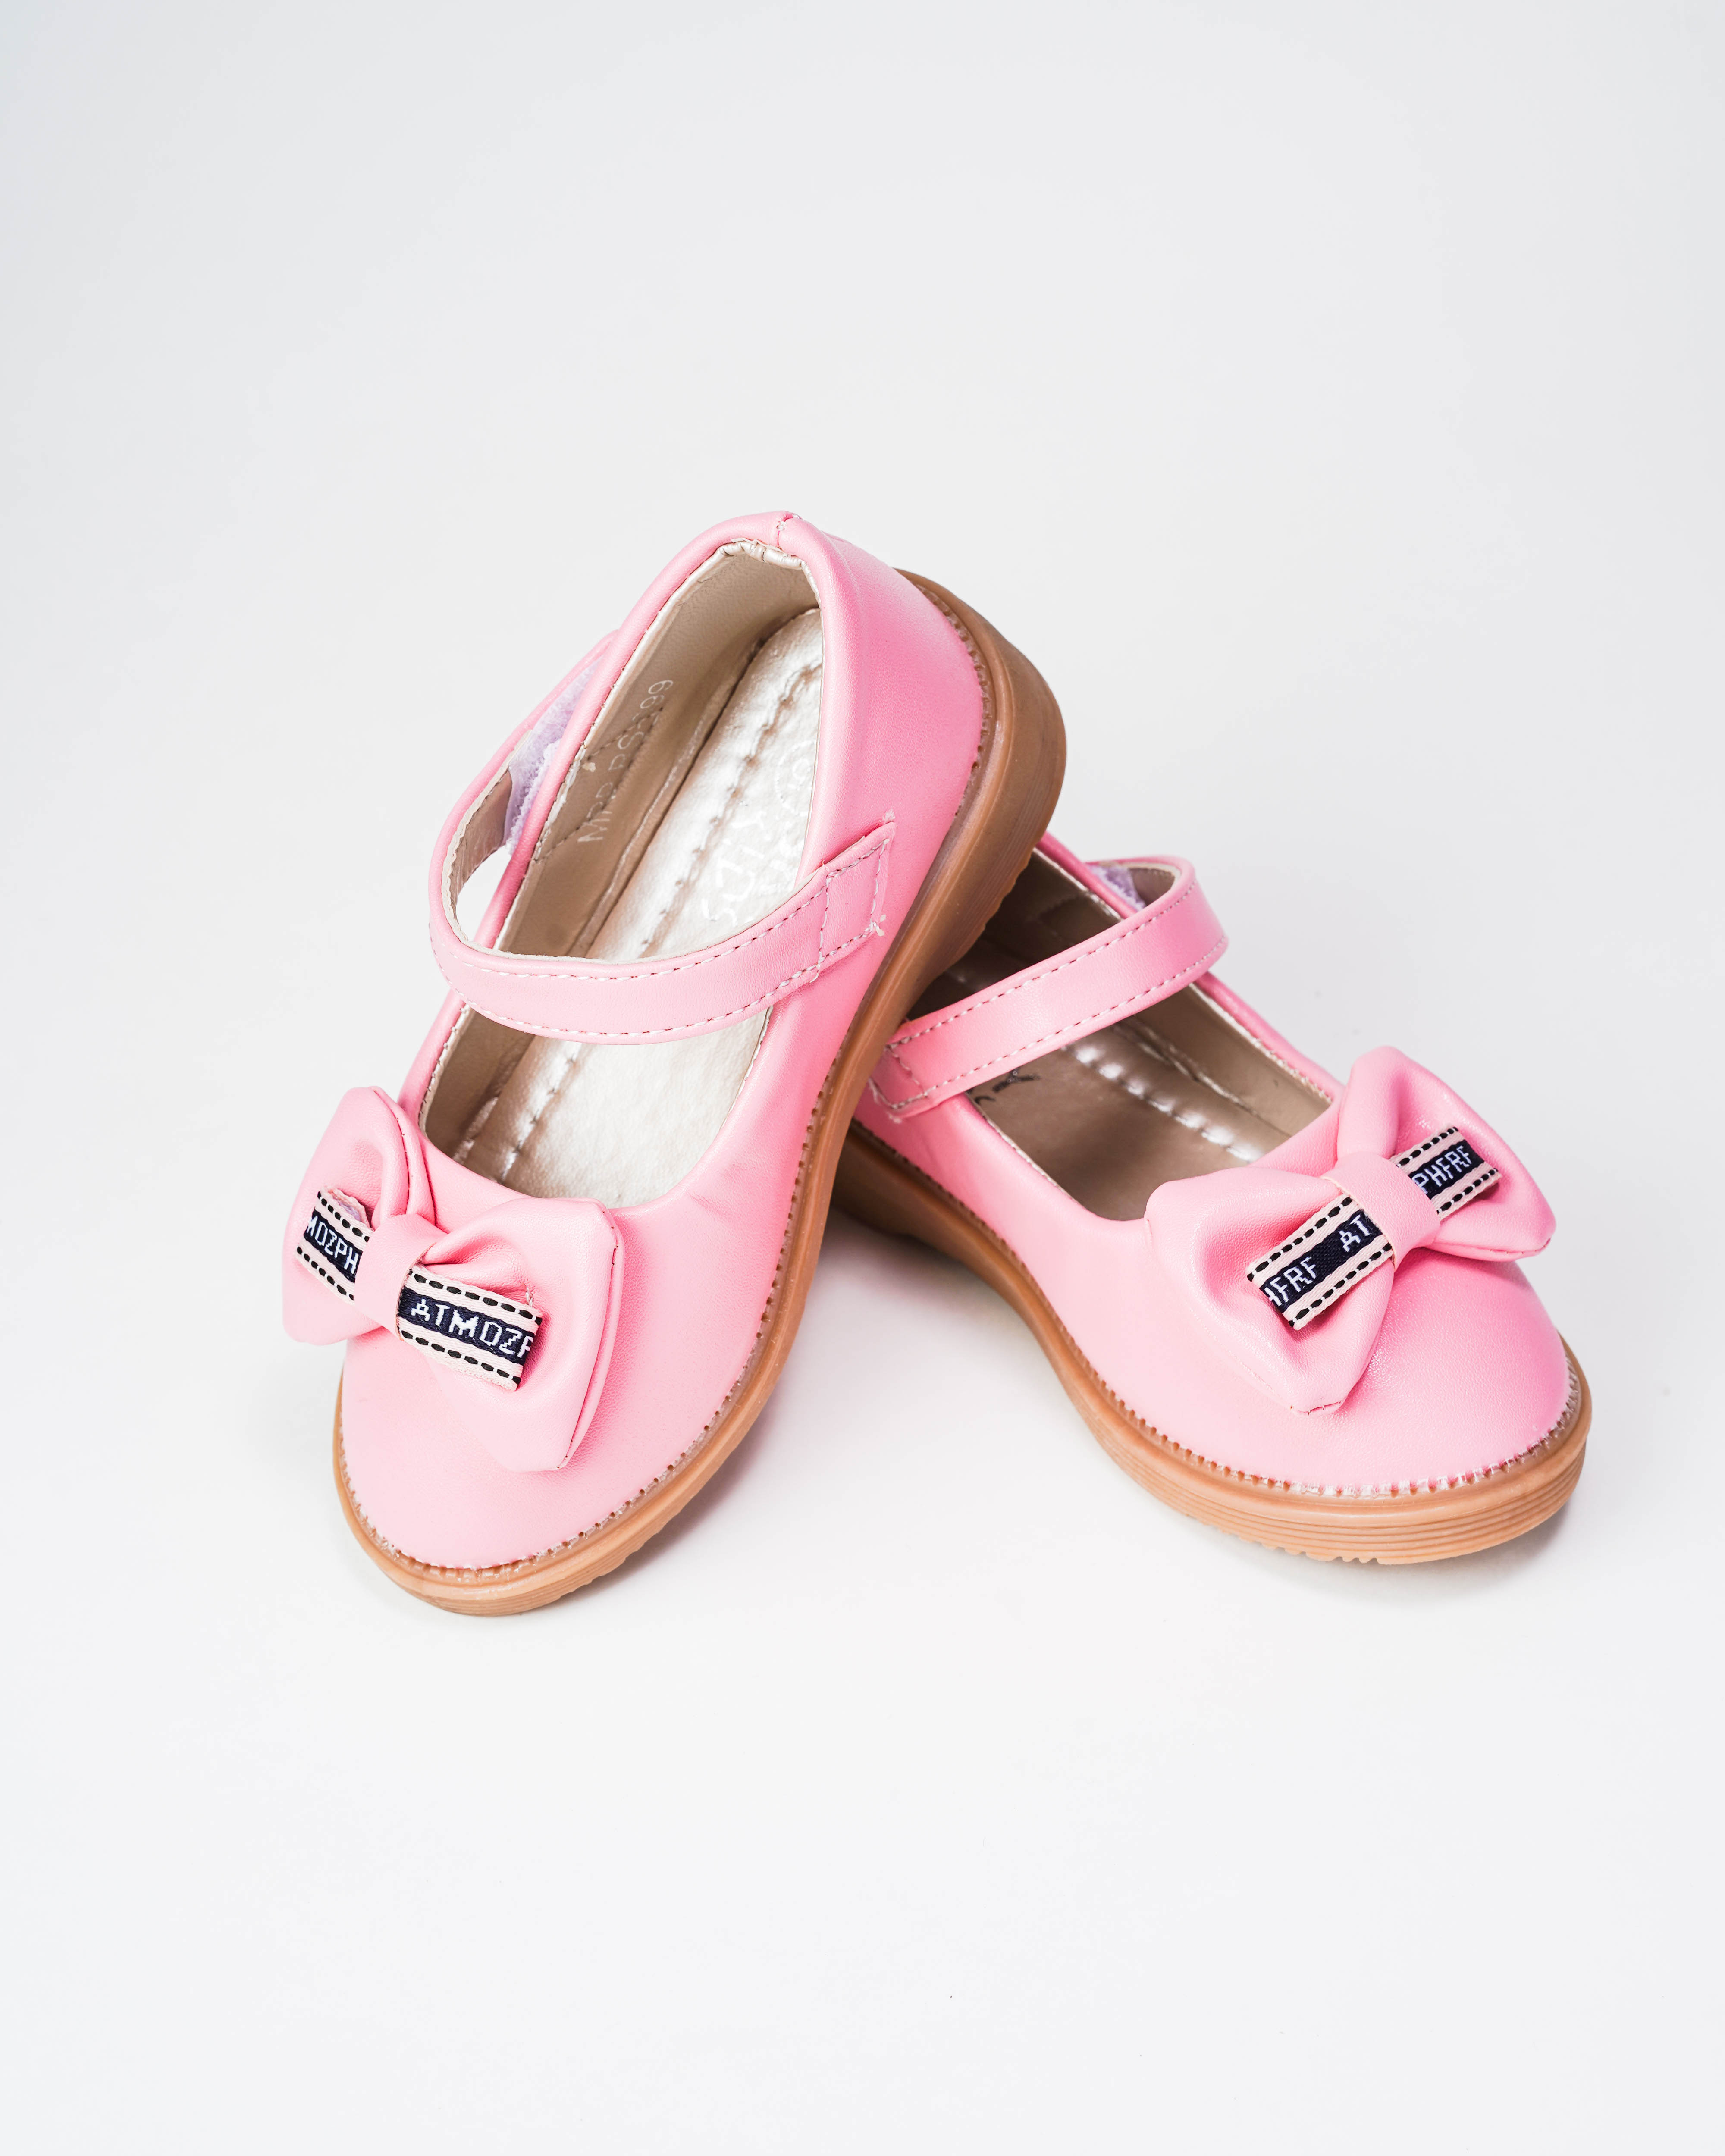 MACAW 7133 PINK